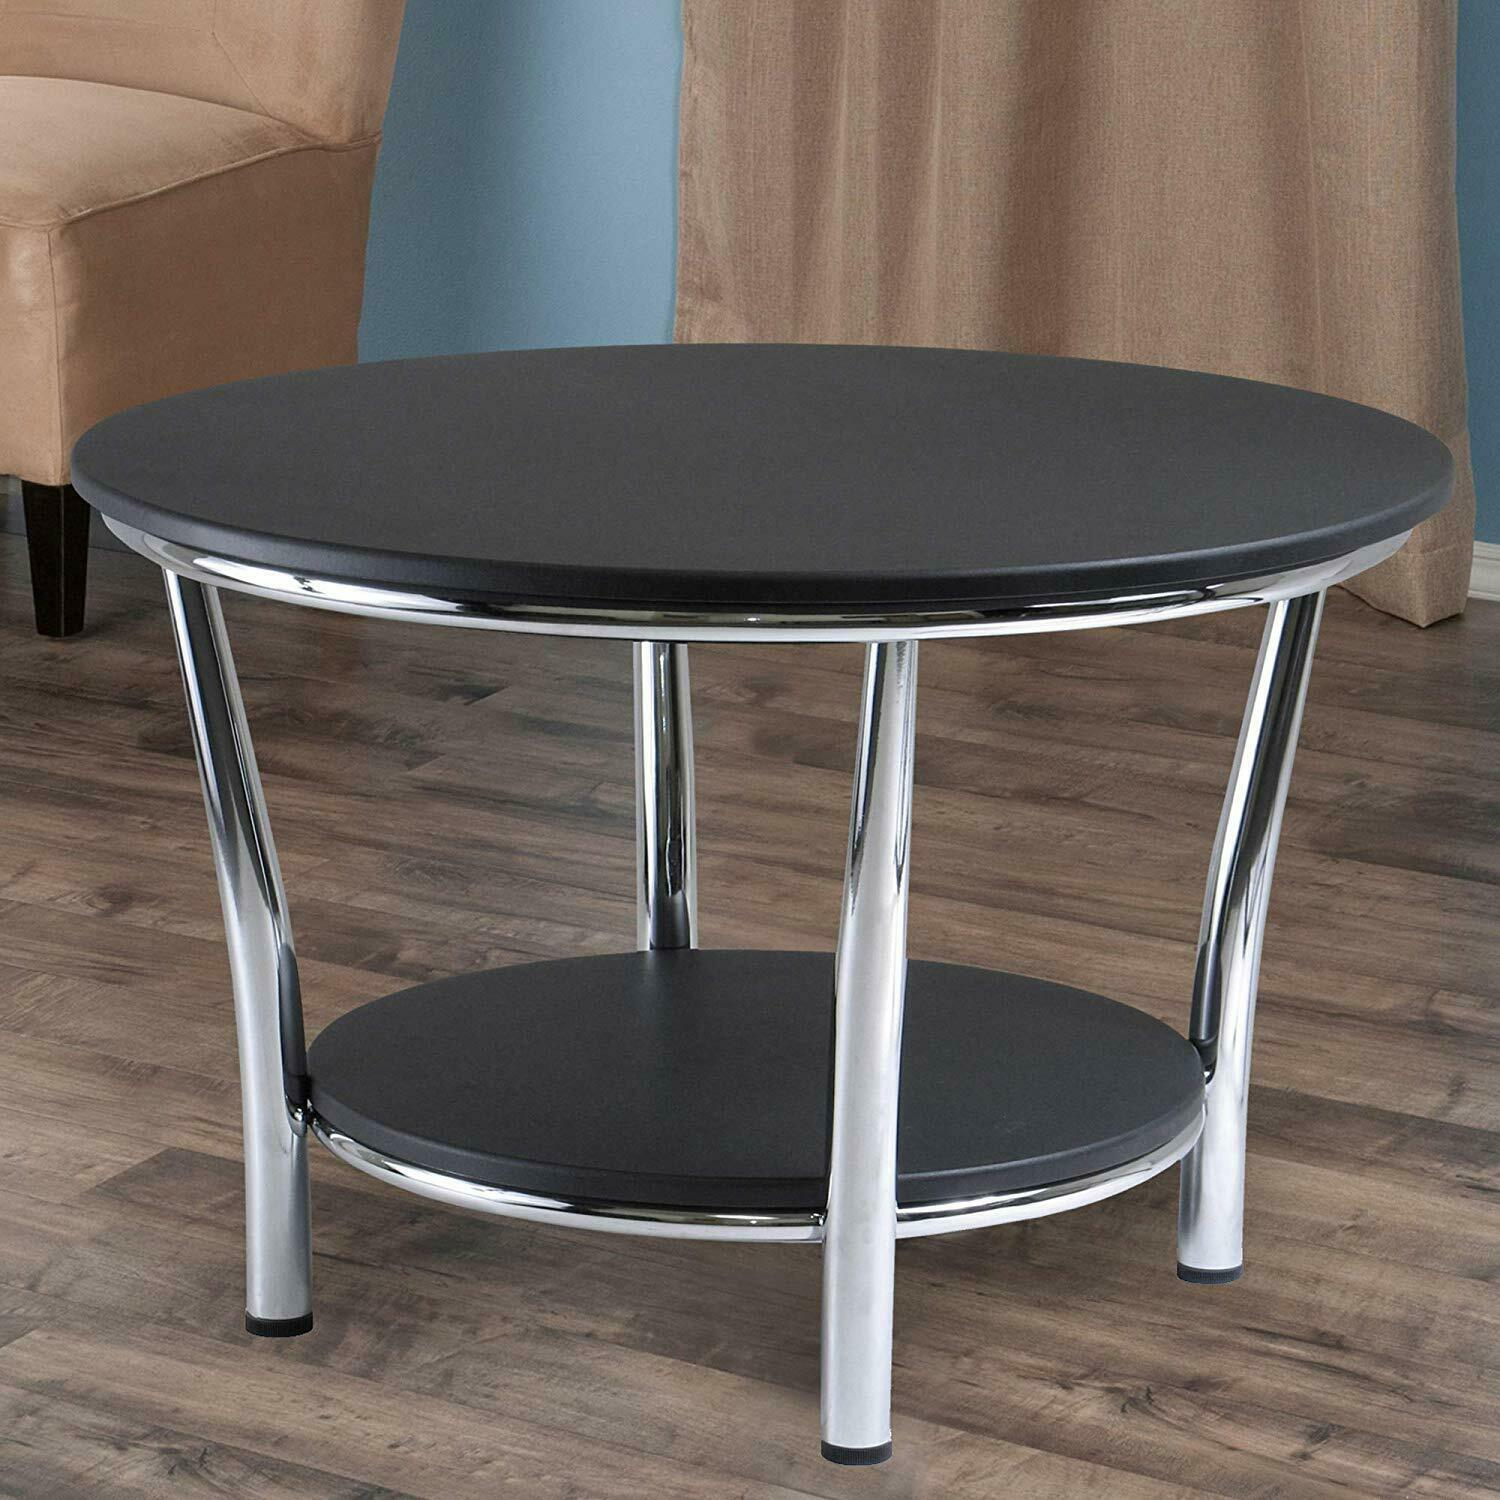 Coffee Table Winsome Wood 93230 Maya Occasional Table, Black